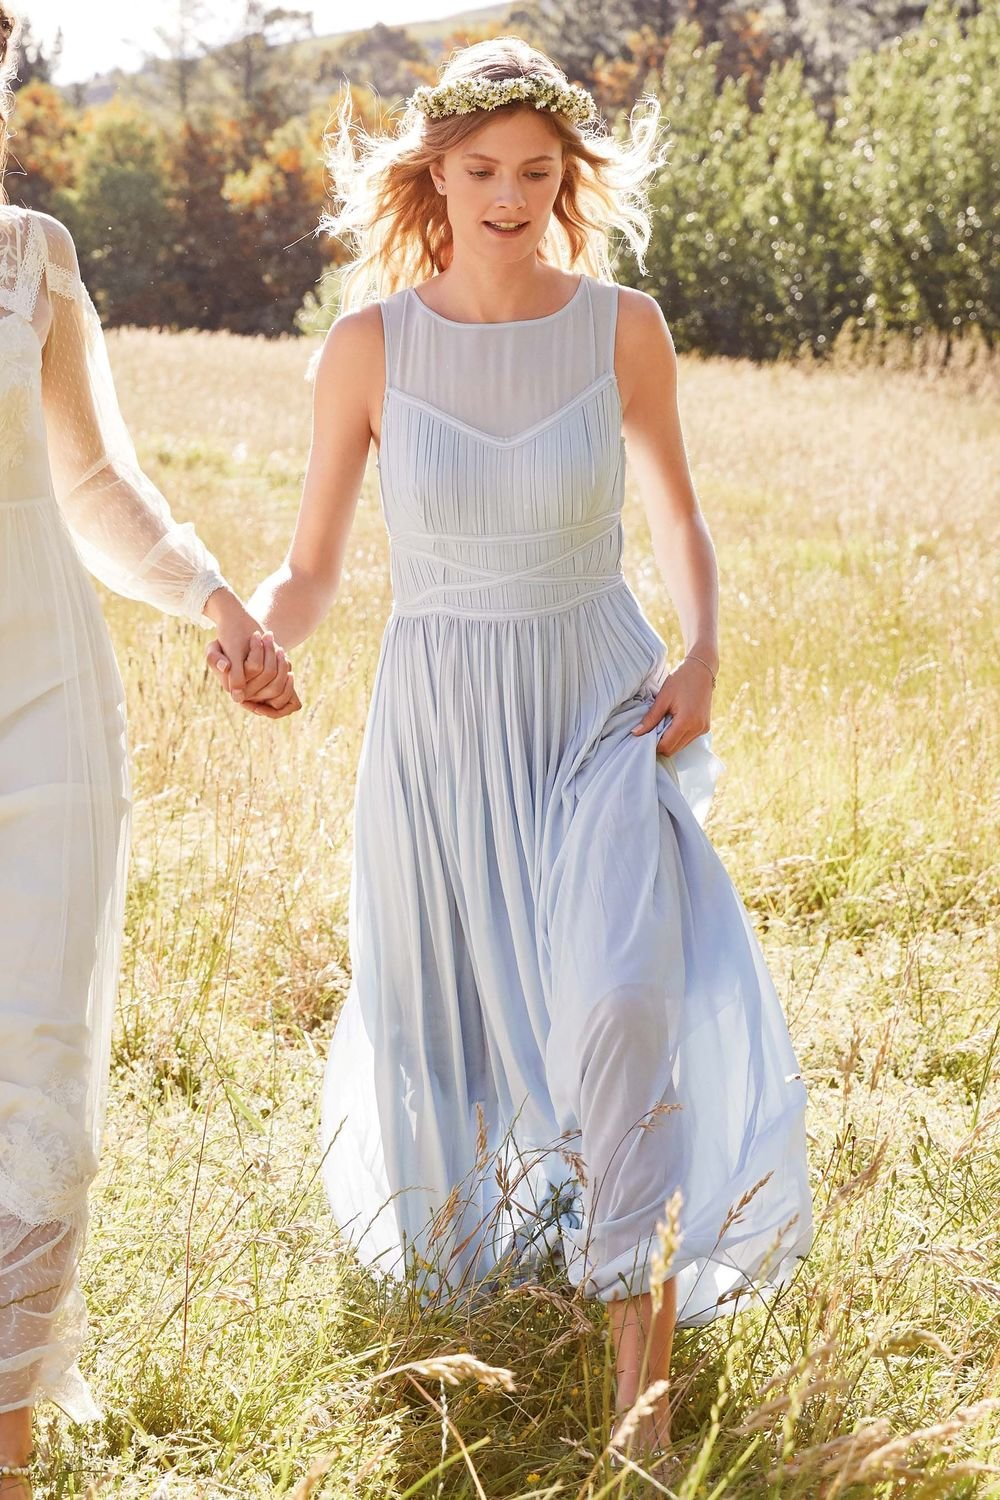 Bridesmaid Dresses Online Shopping